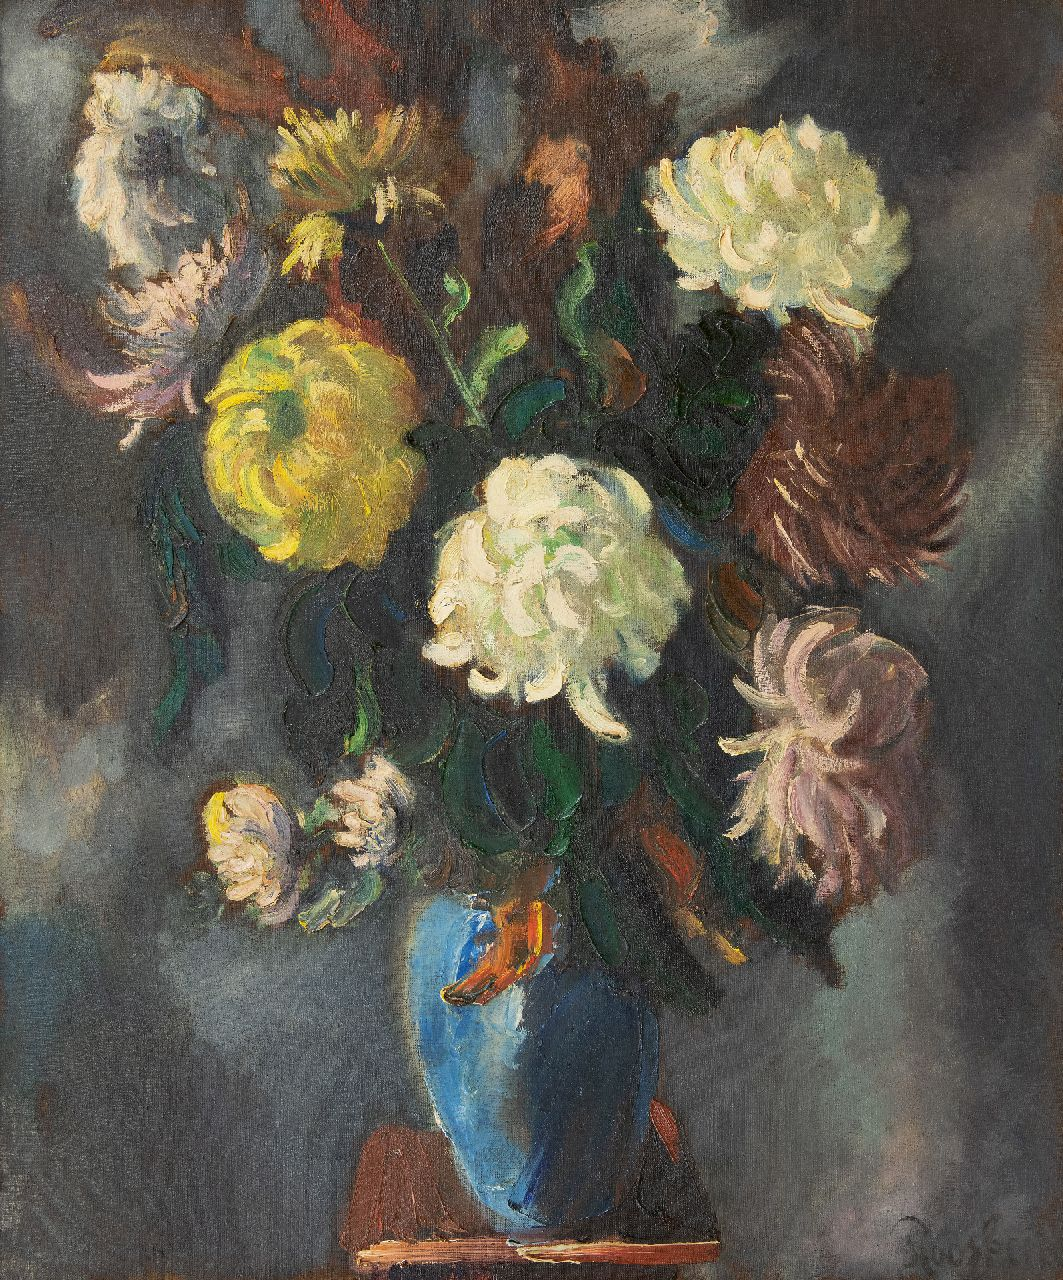 Rooskens J.A.  | Joseph Antoon 'Anton' Rooskens | Paintings offered for sale | Chrysanthemums, oil on canvas 90.0 x 75.4 cm, signed l.r. and painted ca. 1938-1941